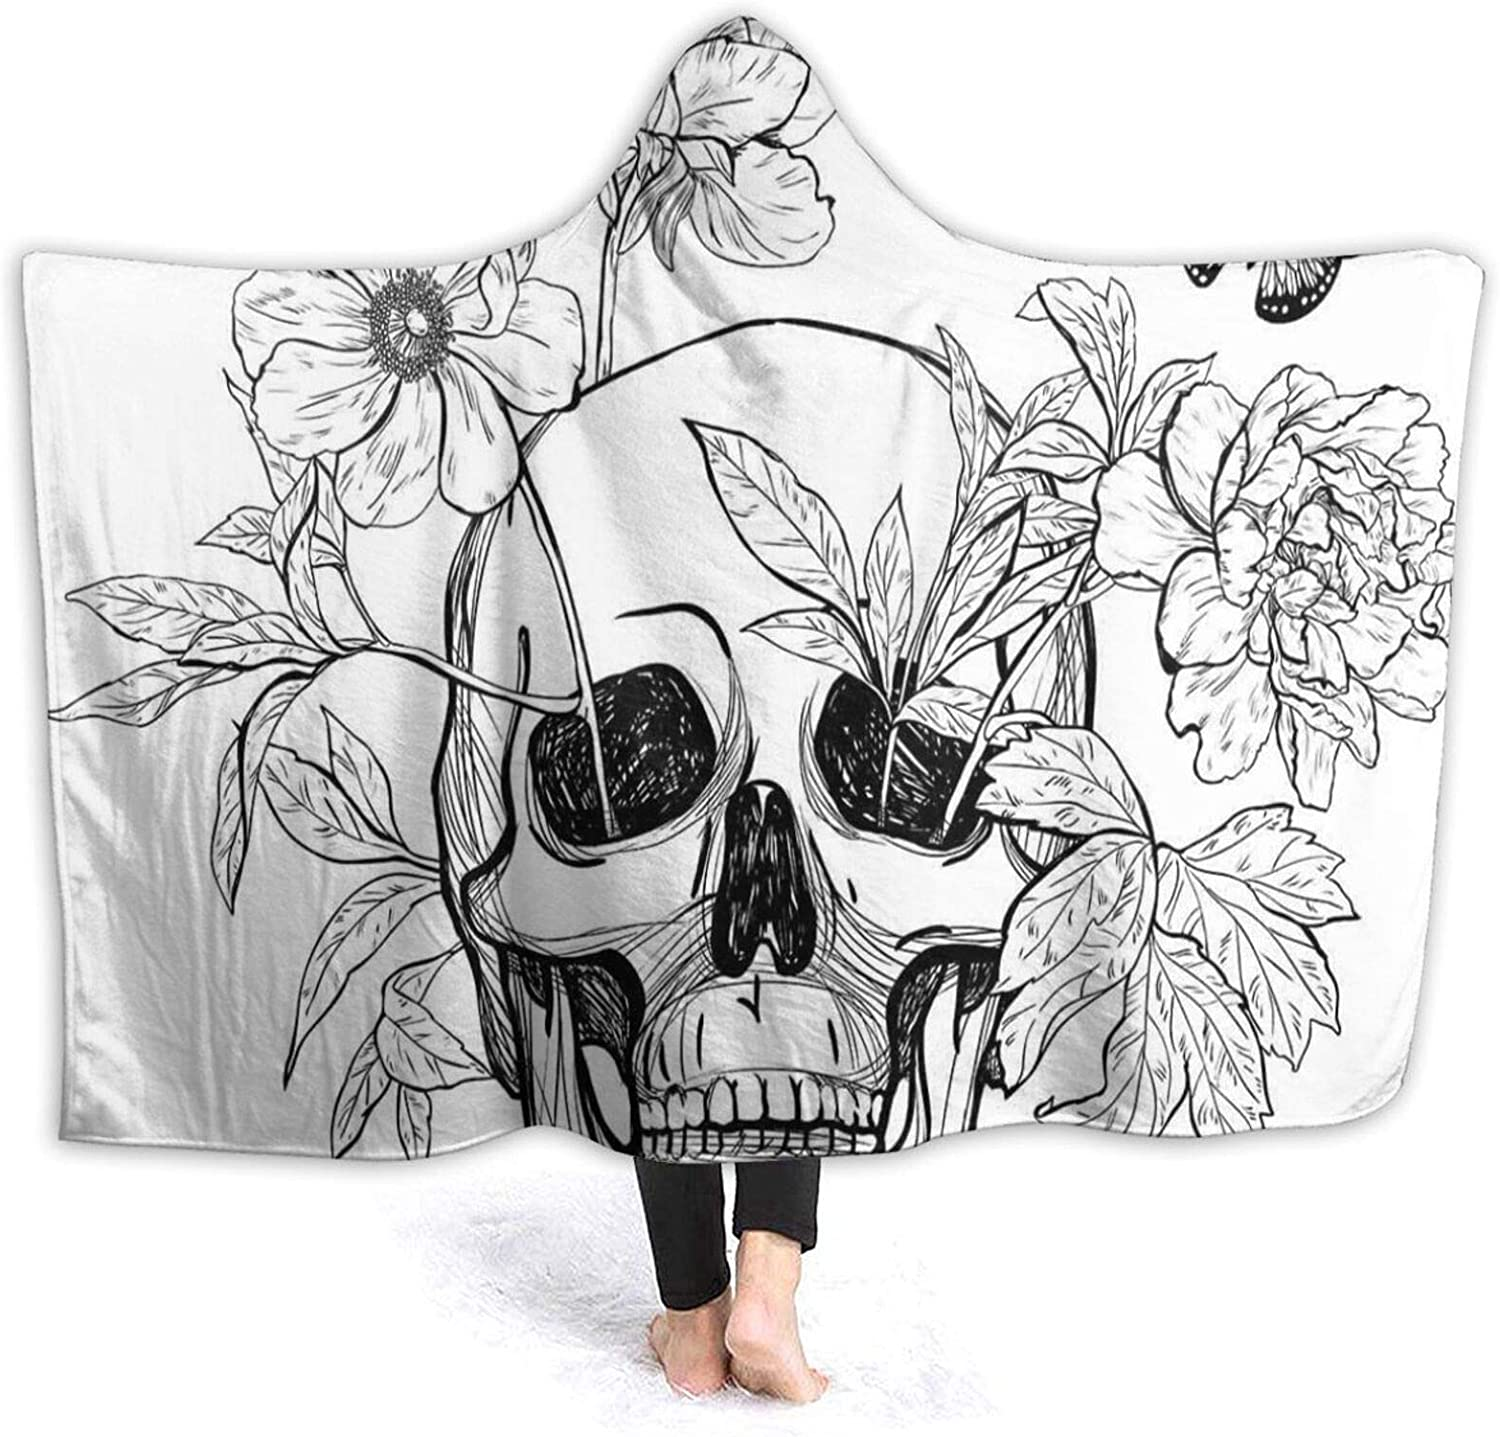 Max 42% OFF Hooded Blanket Anti-Pilling Flannel Skull shop and Blooms with Flower